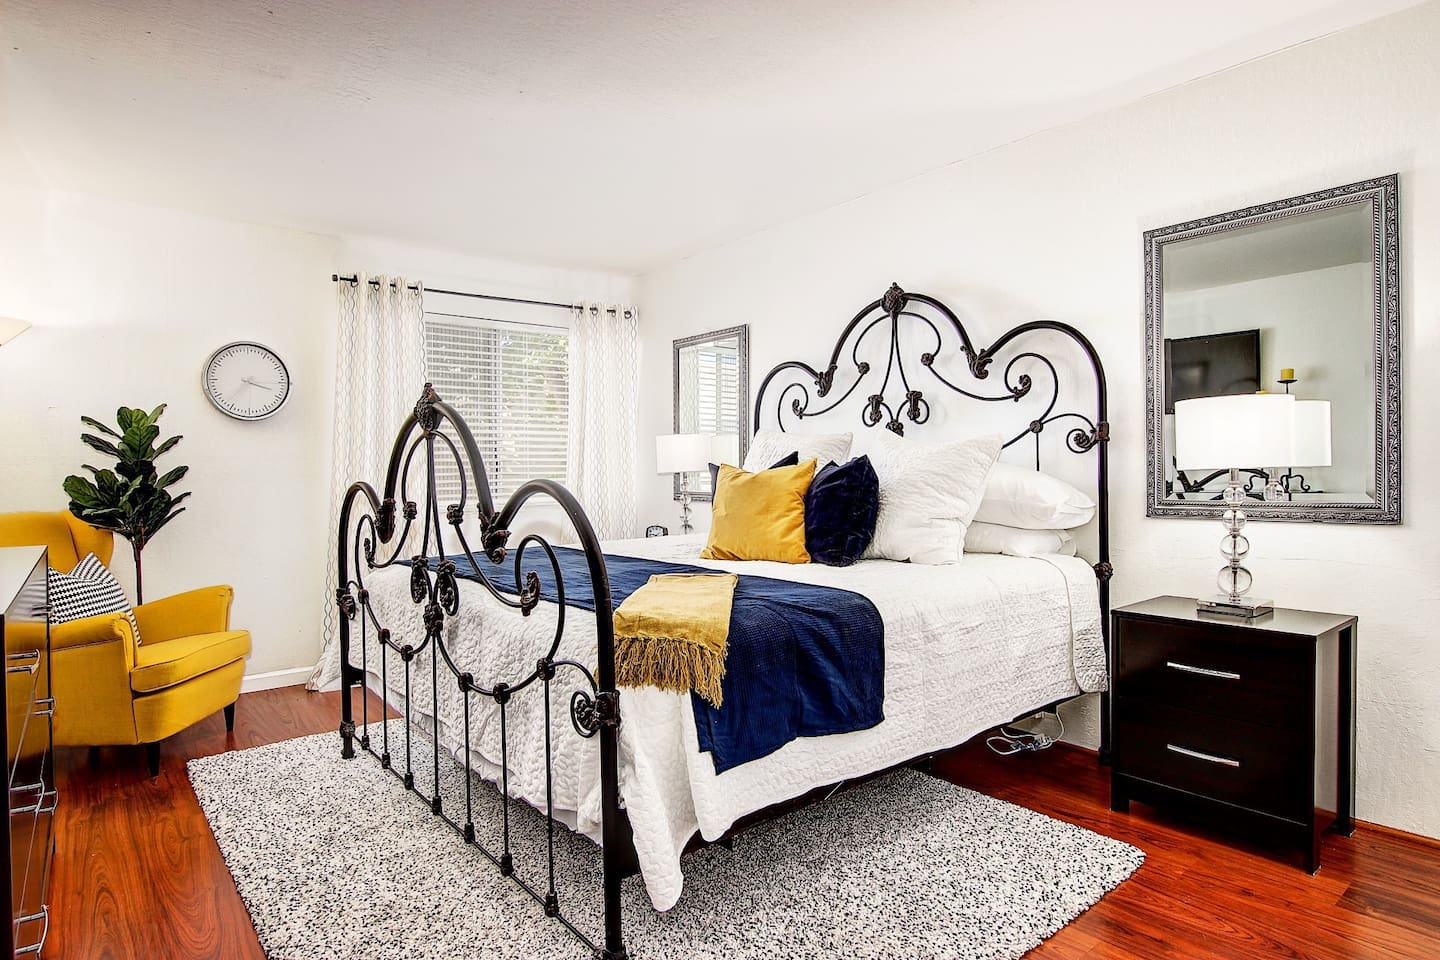 Relax in this comfortable king sized bed after the myriad of exciting activities that are available in Scottsdale.